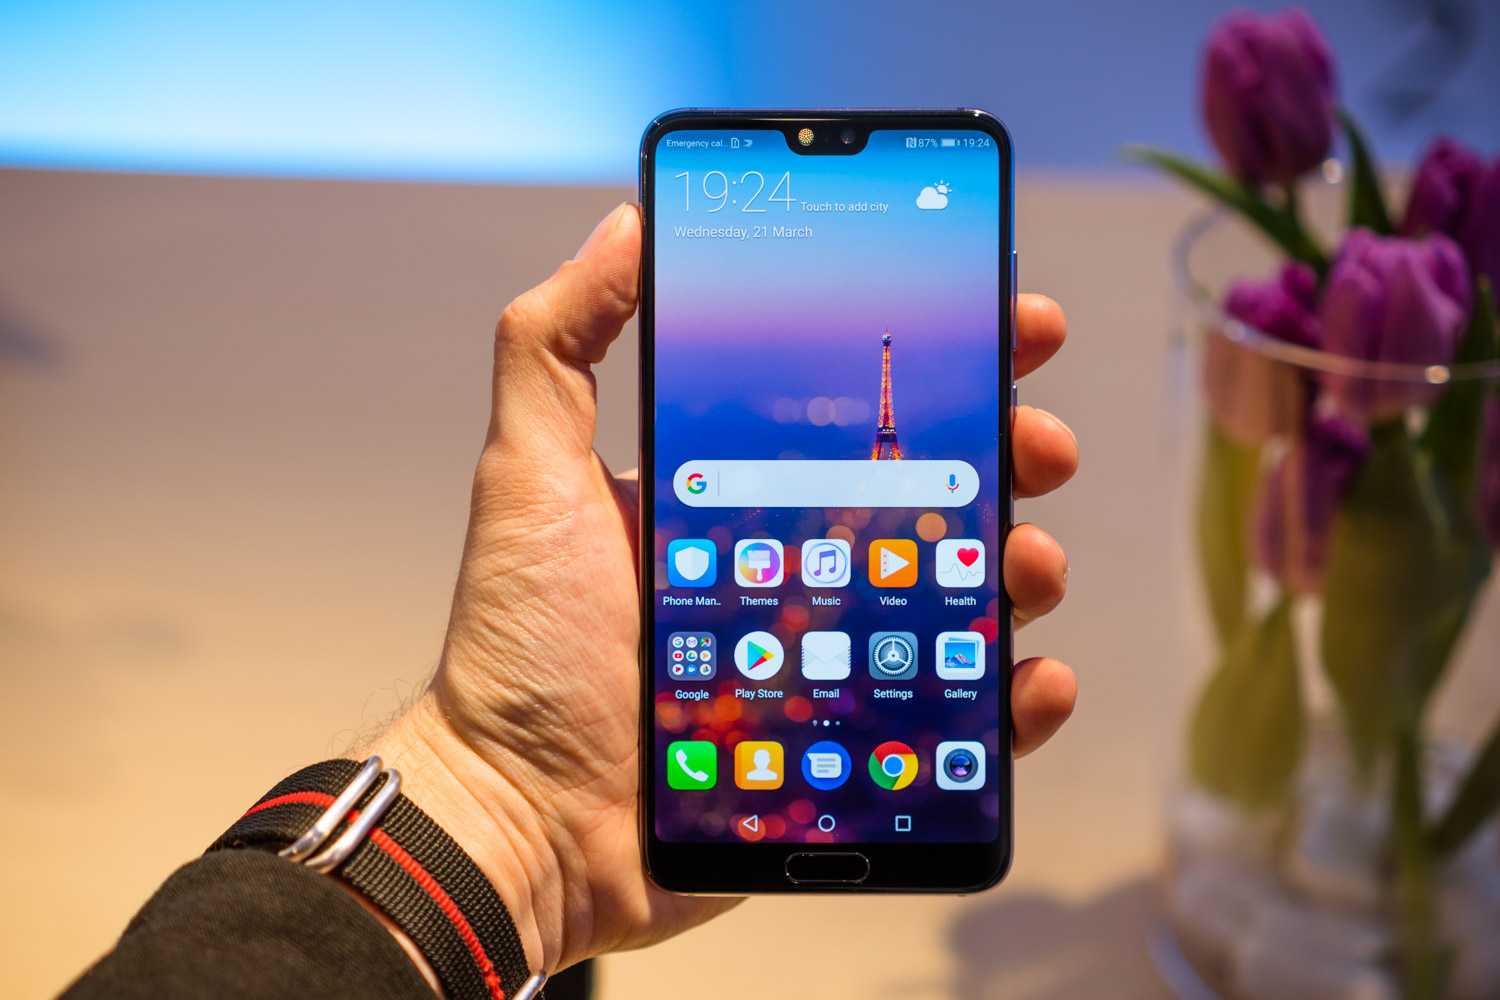 Huawei Mate 20 Pro, however, without Android Q beta access